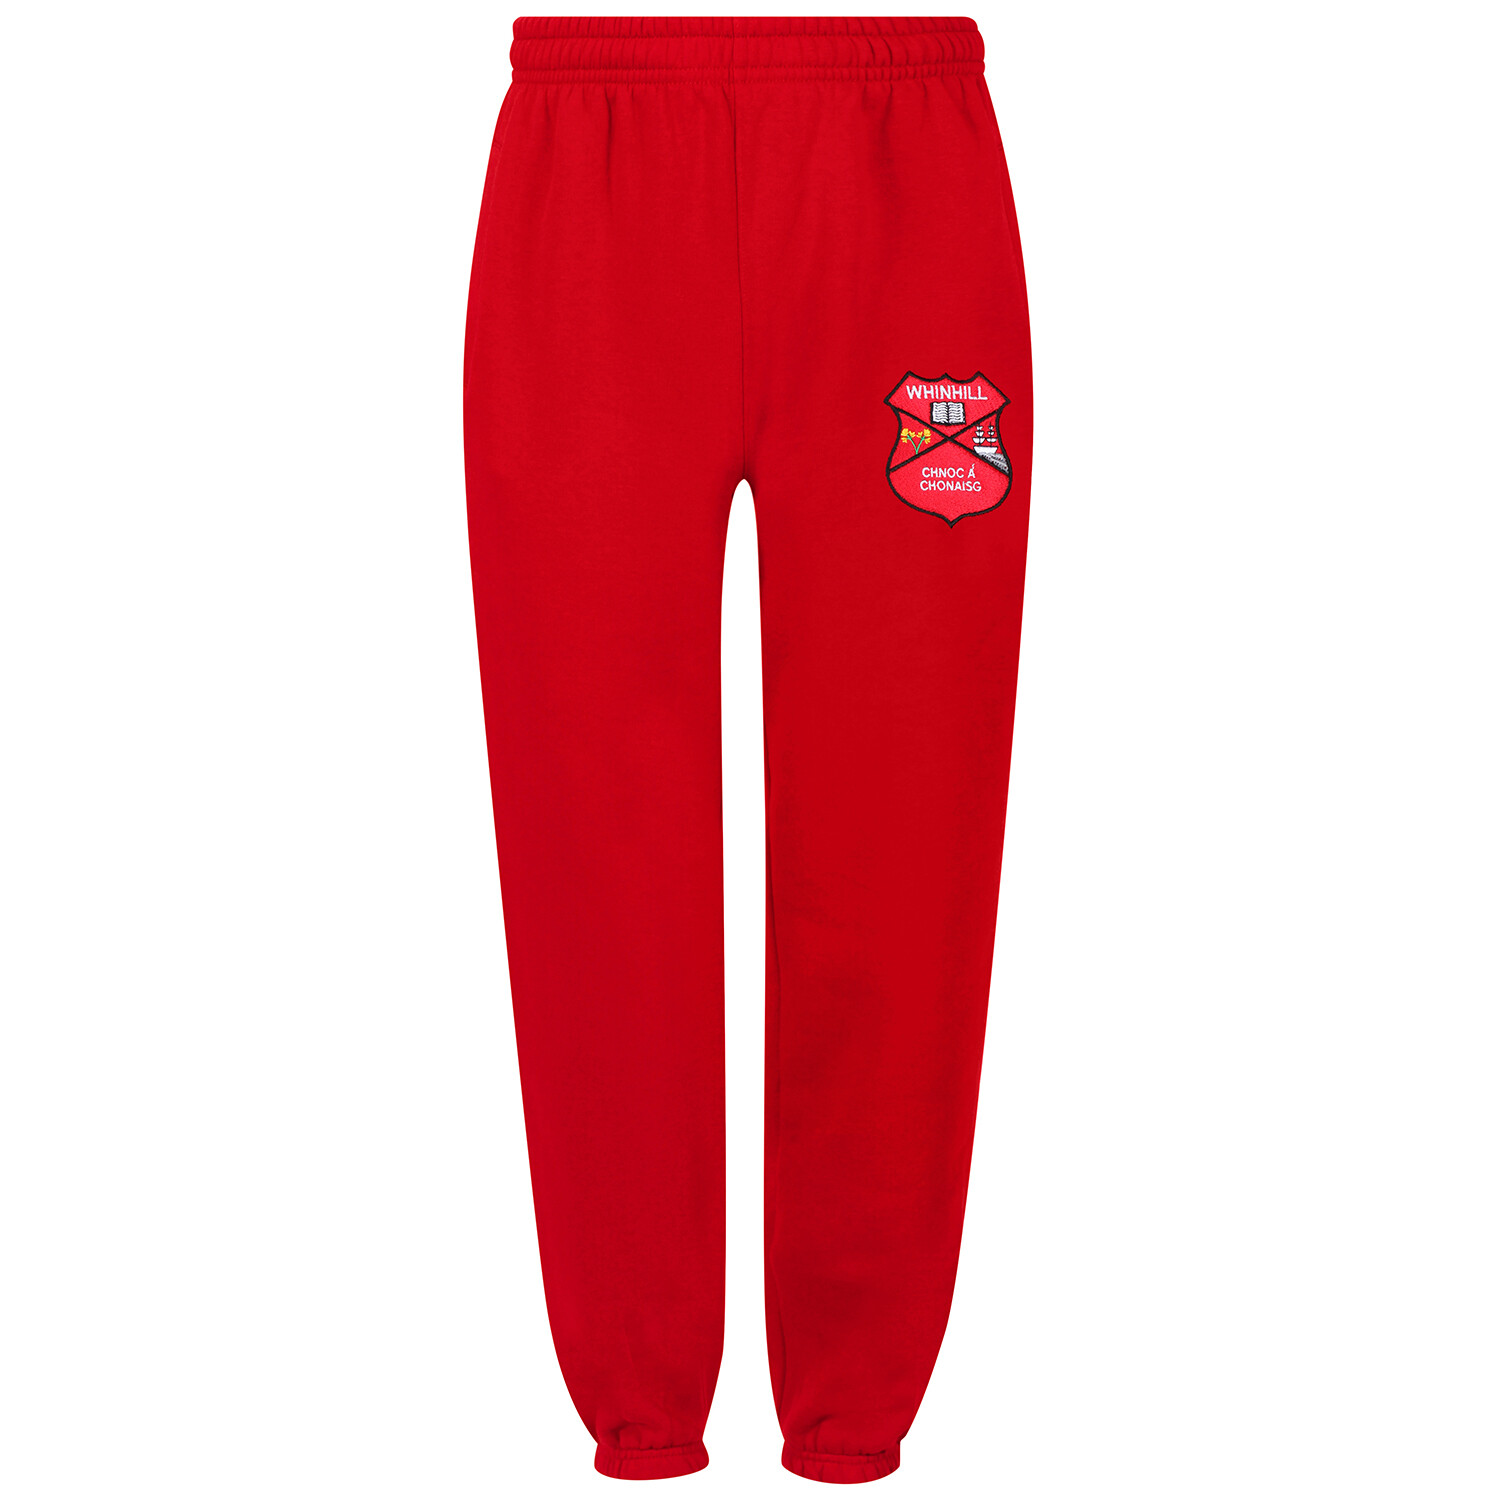 Whinhill Jog Pant for PE & Outdoor Activity (choice of colours)